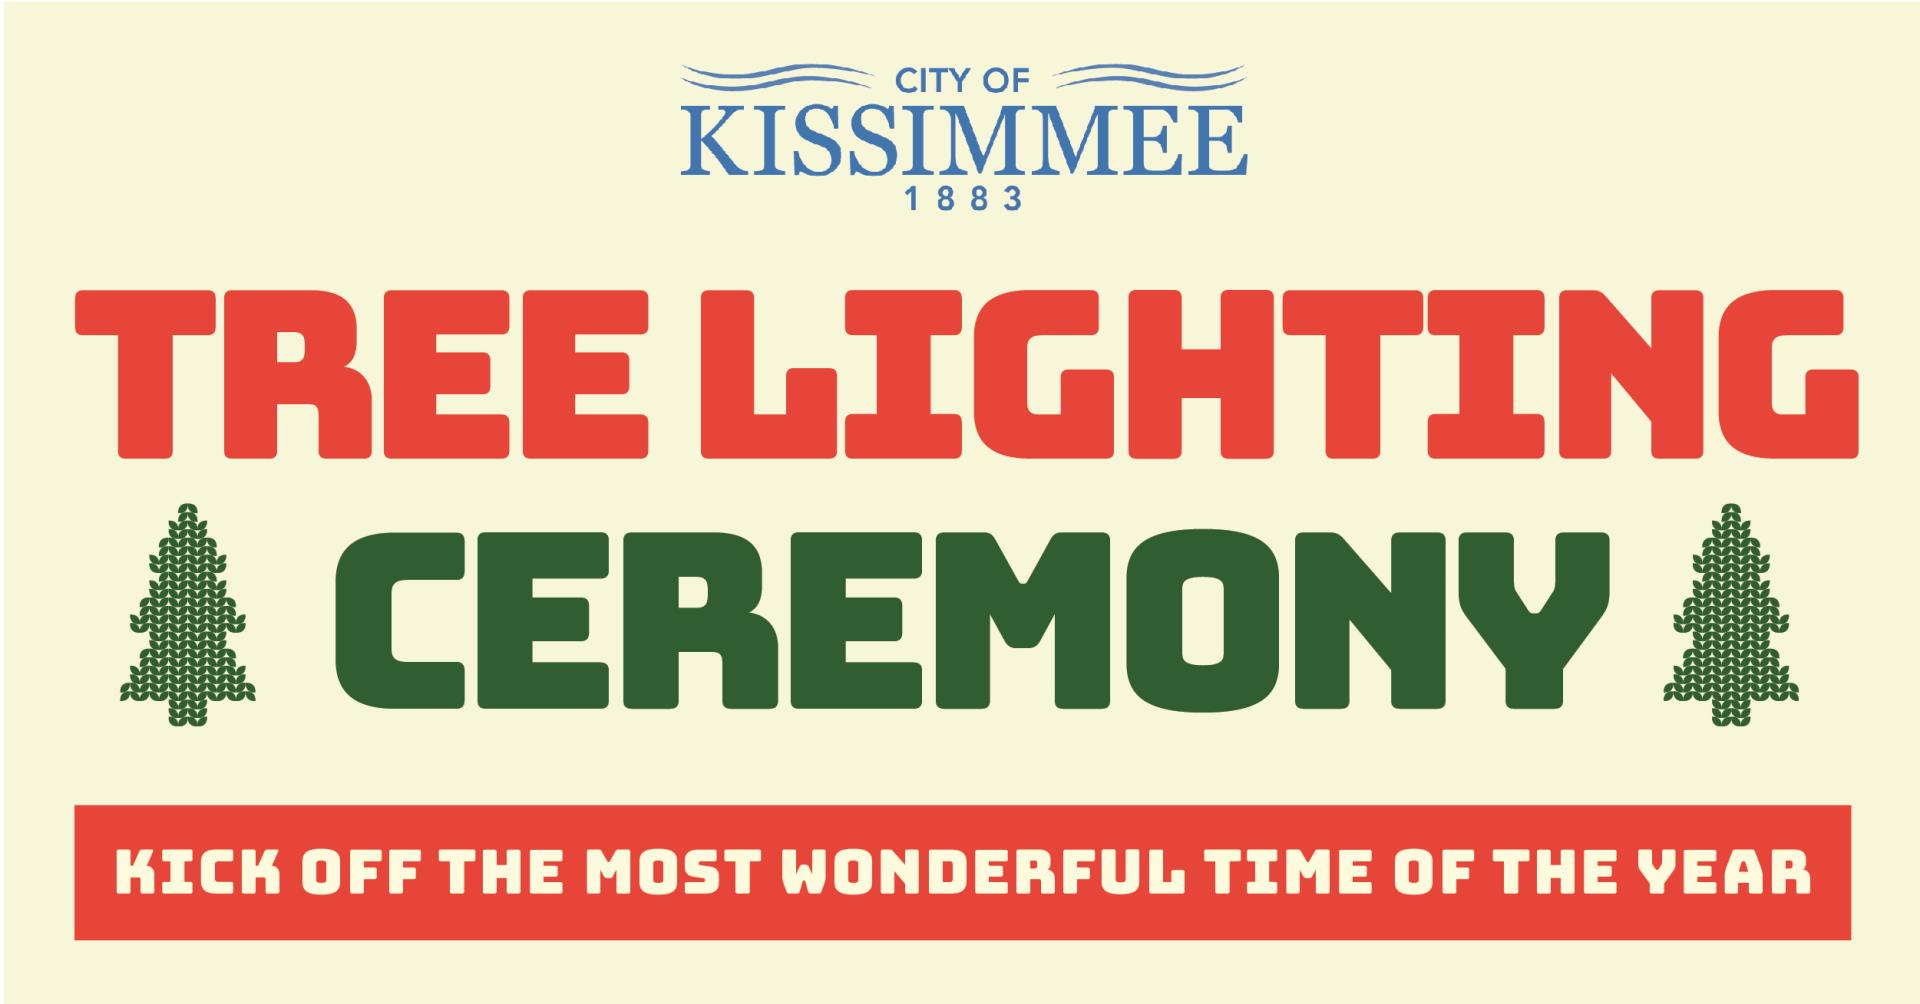 This is a graphic for the City of Kissimmee's annual Tree Lighting Ceremony at Kissimmee City Hall.